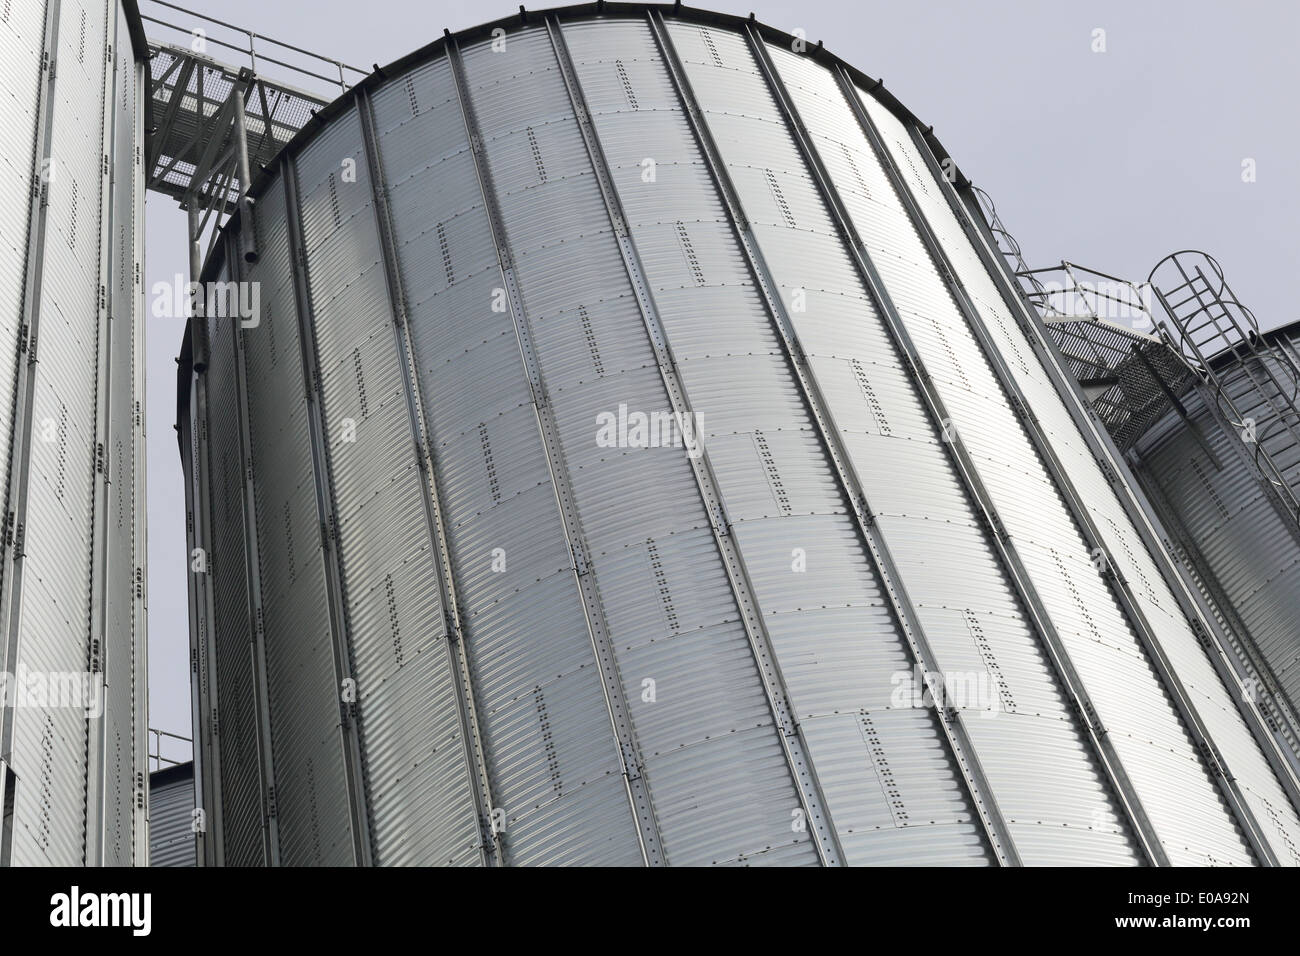 Detail of silver silos in port - Stock Image